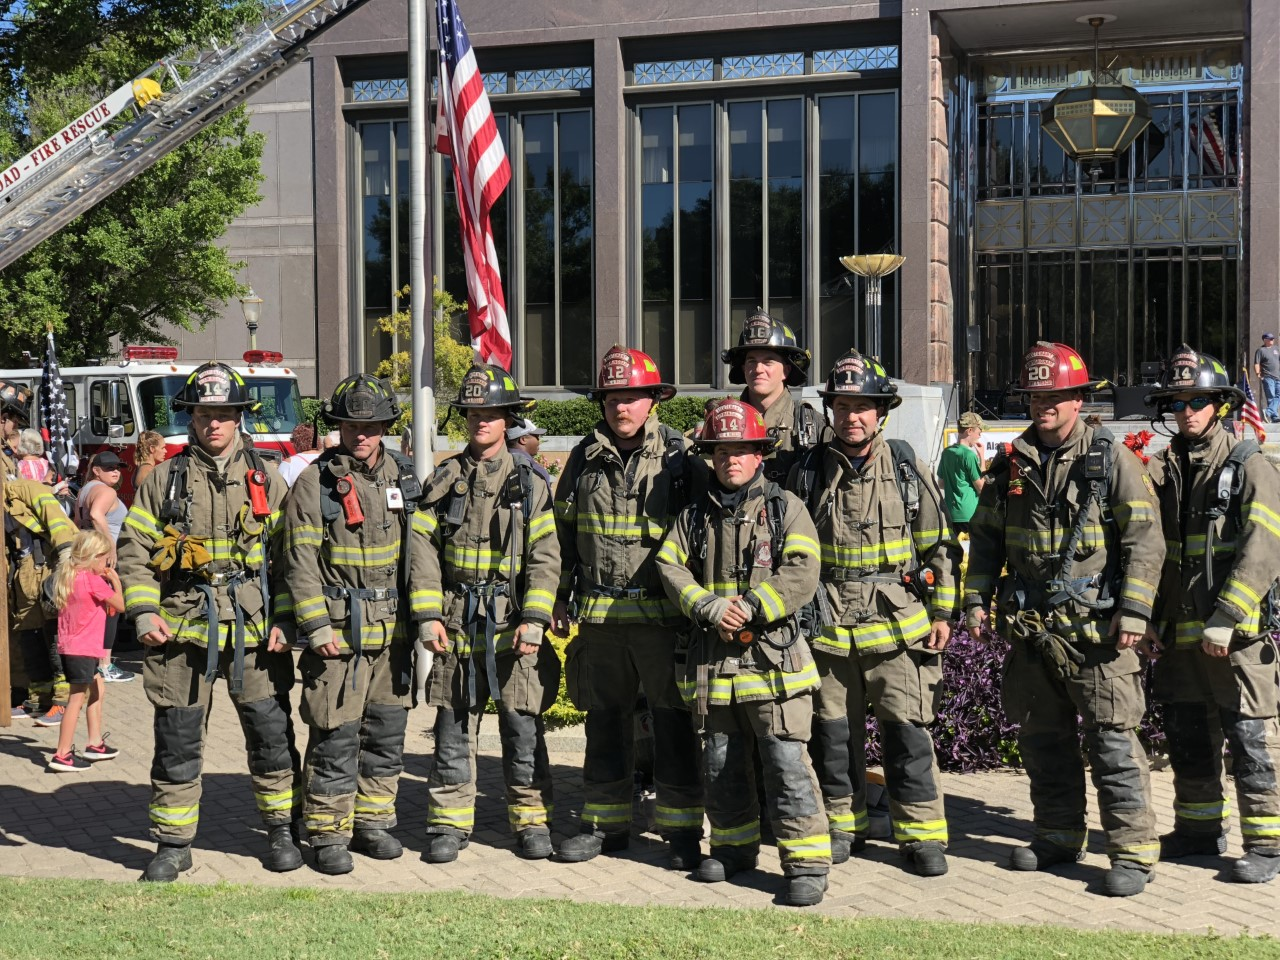 Birmingham Fire Dept at Memorial Stair Climb